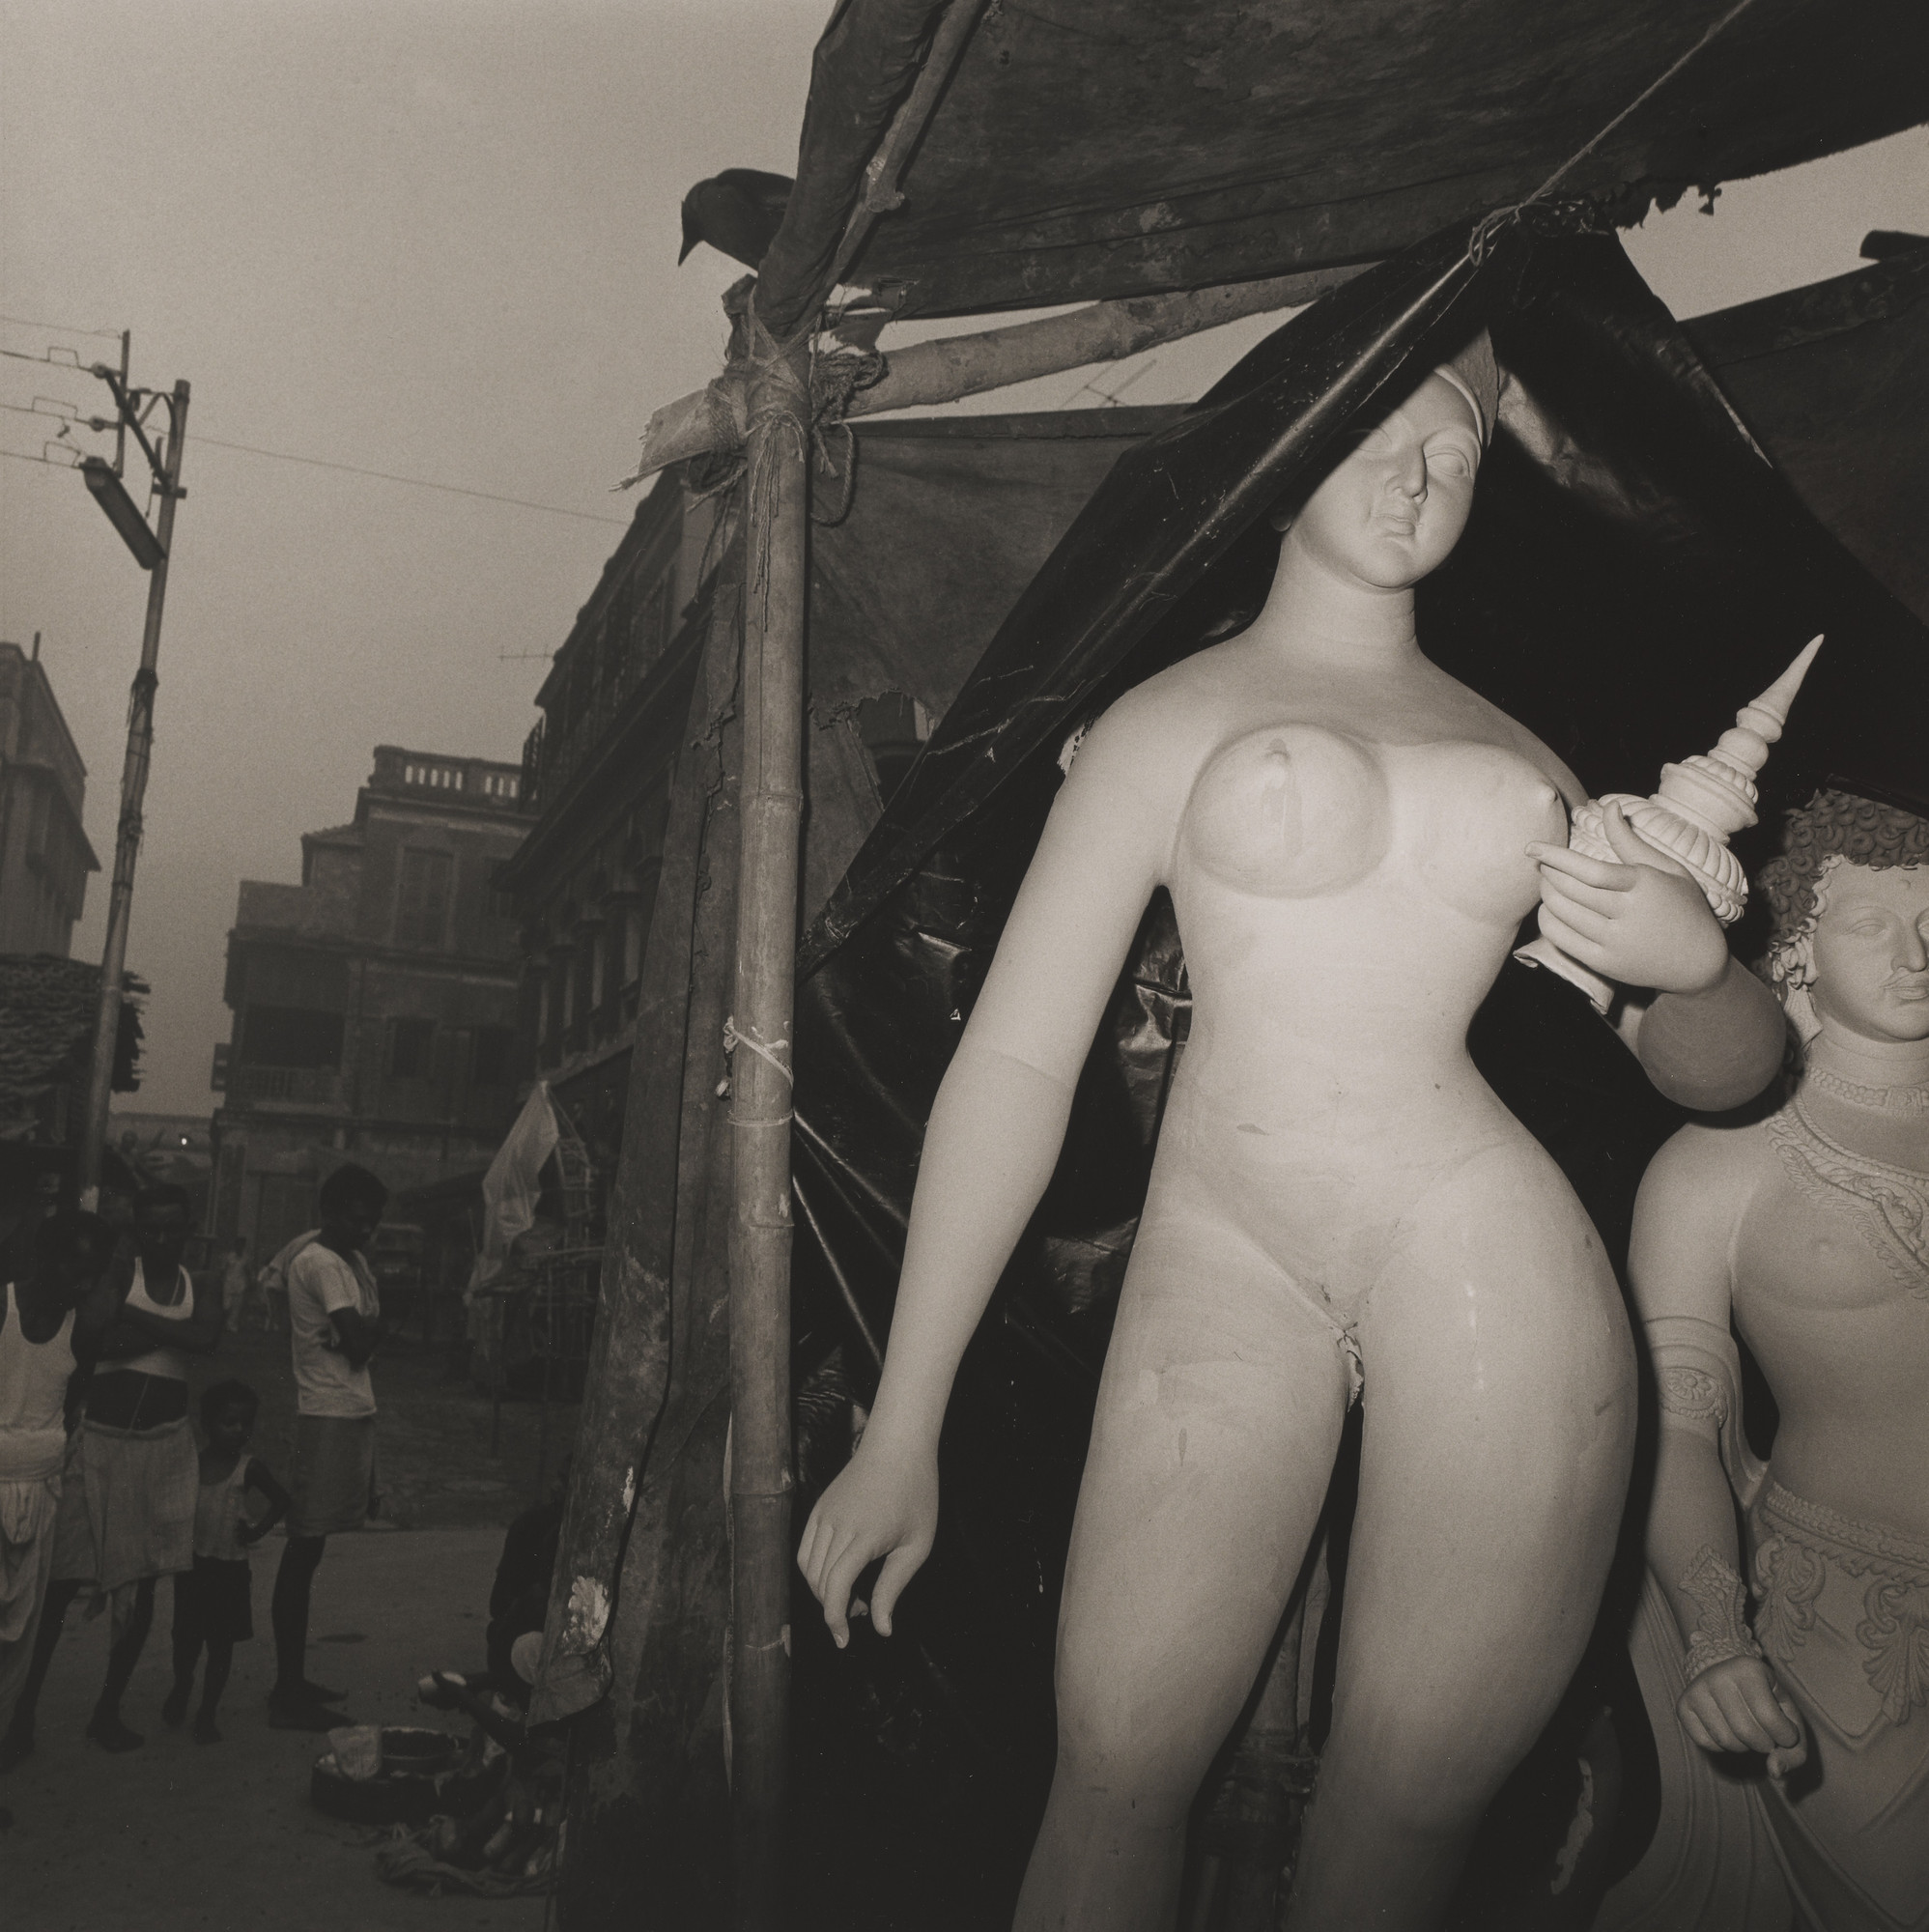 Rosalind Fox Solomon. Untitled, Calcutta, India. 1982